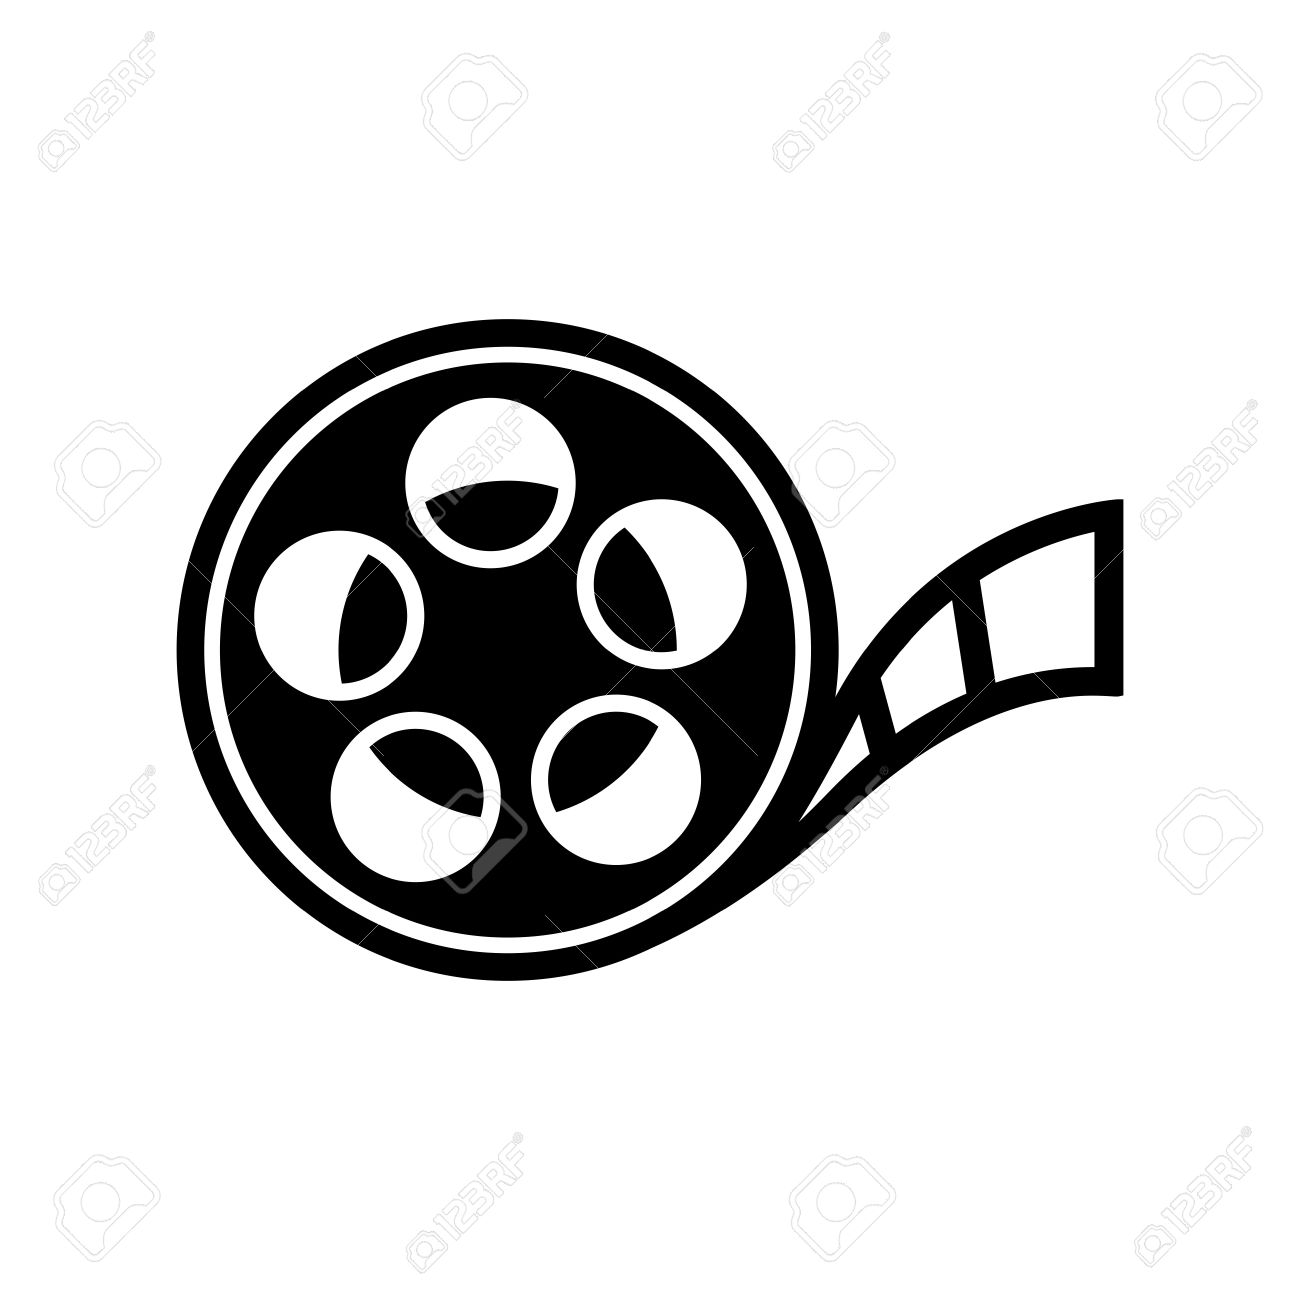 hight resolution of film reel icon stock vector 45755097